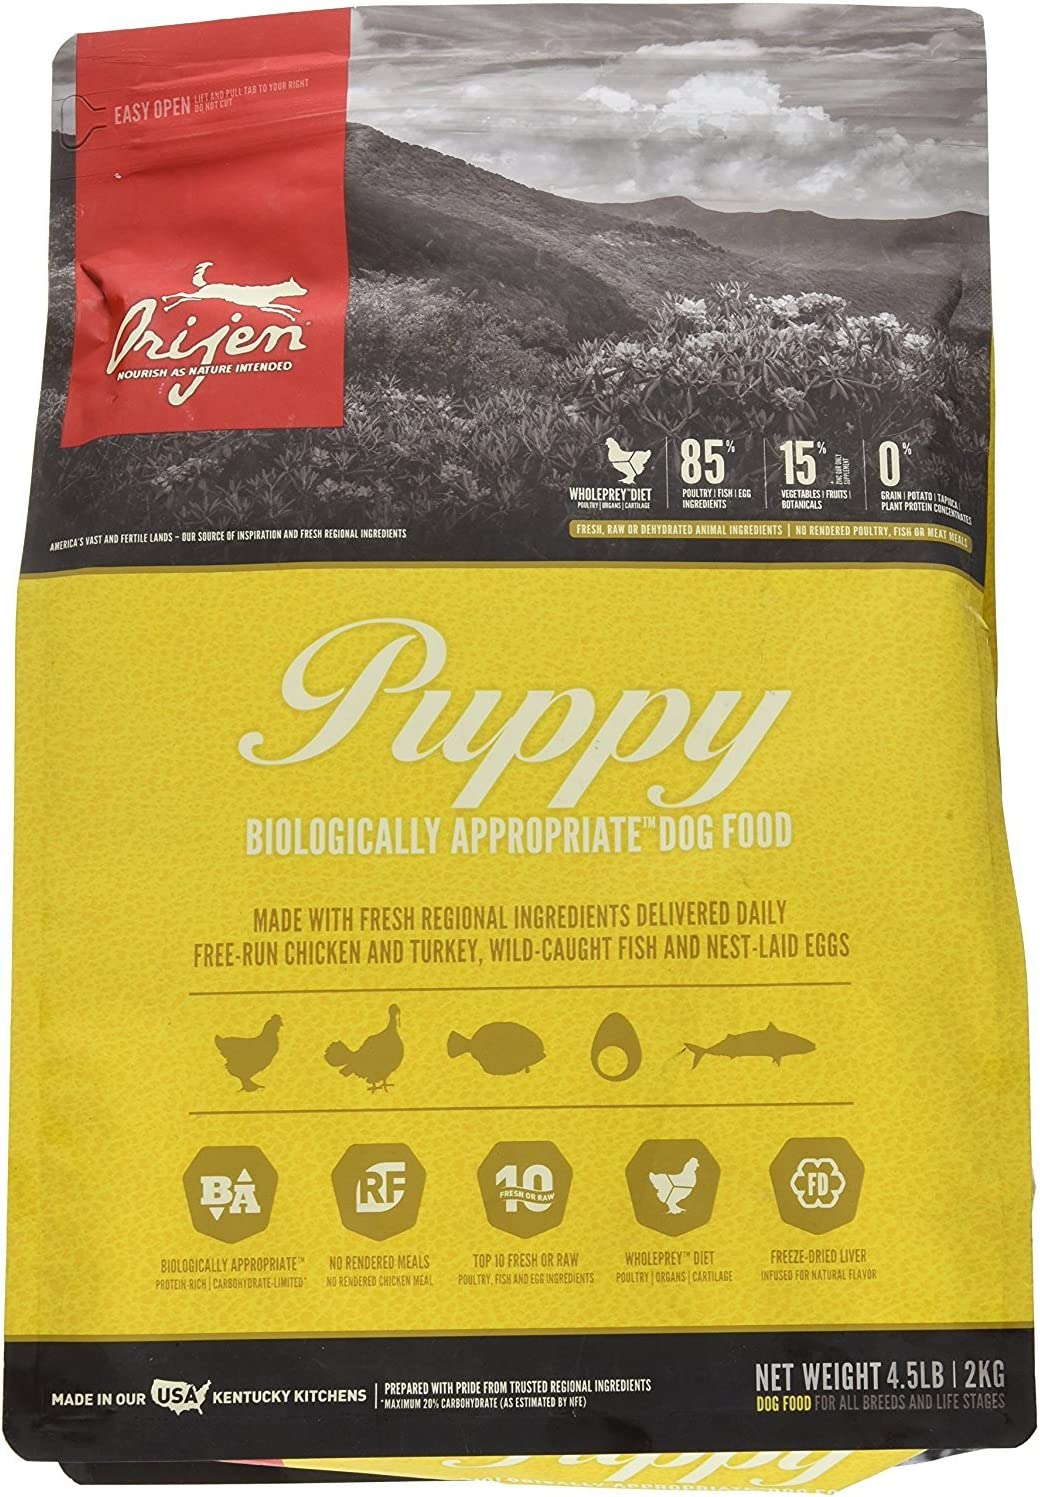 Orijen 4.5 LB Puppy Dry Dog Food Formula. (1 Pack) Grain Free Puppy Food